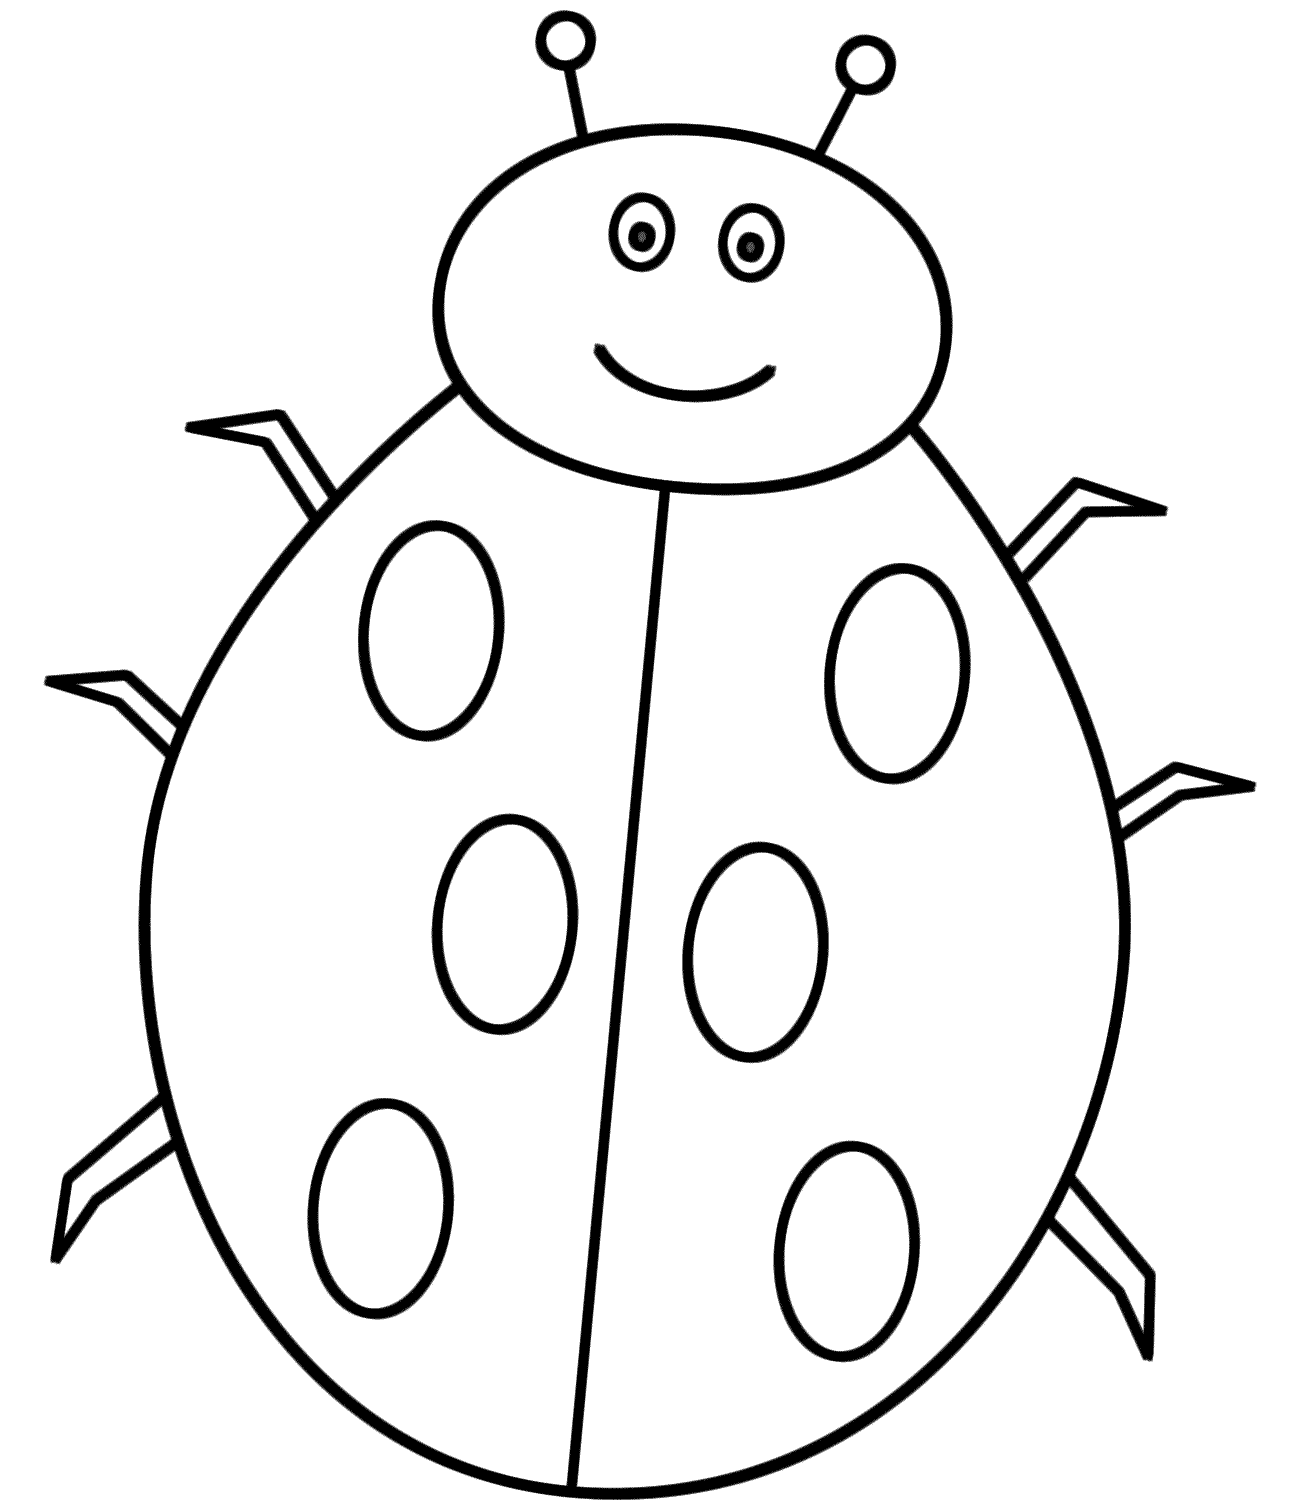 ladybug for coloring ladybug coloring pages to download and print for free ladybug coloring for